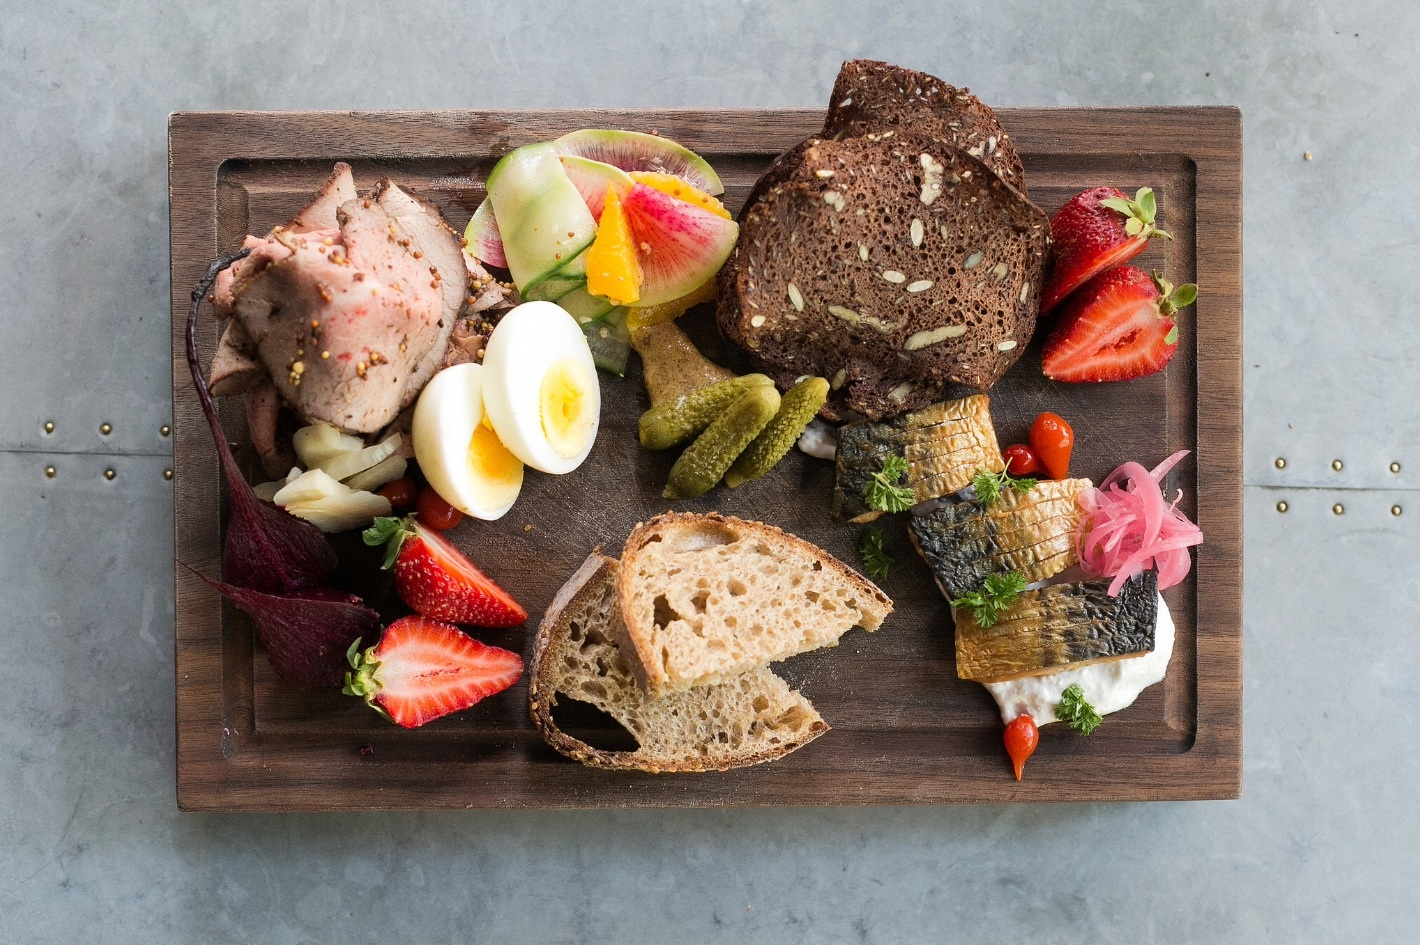 Farmer's Lunch:  Assorted house made charcuterie with traditional garnishes $17